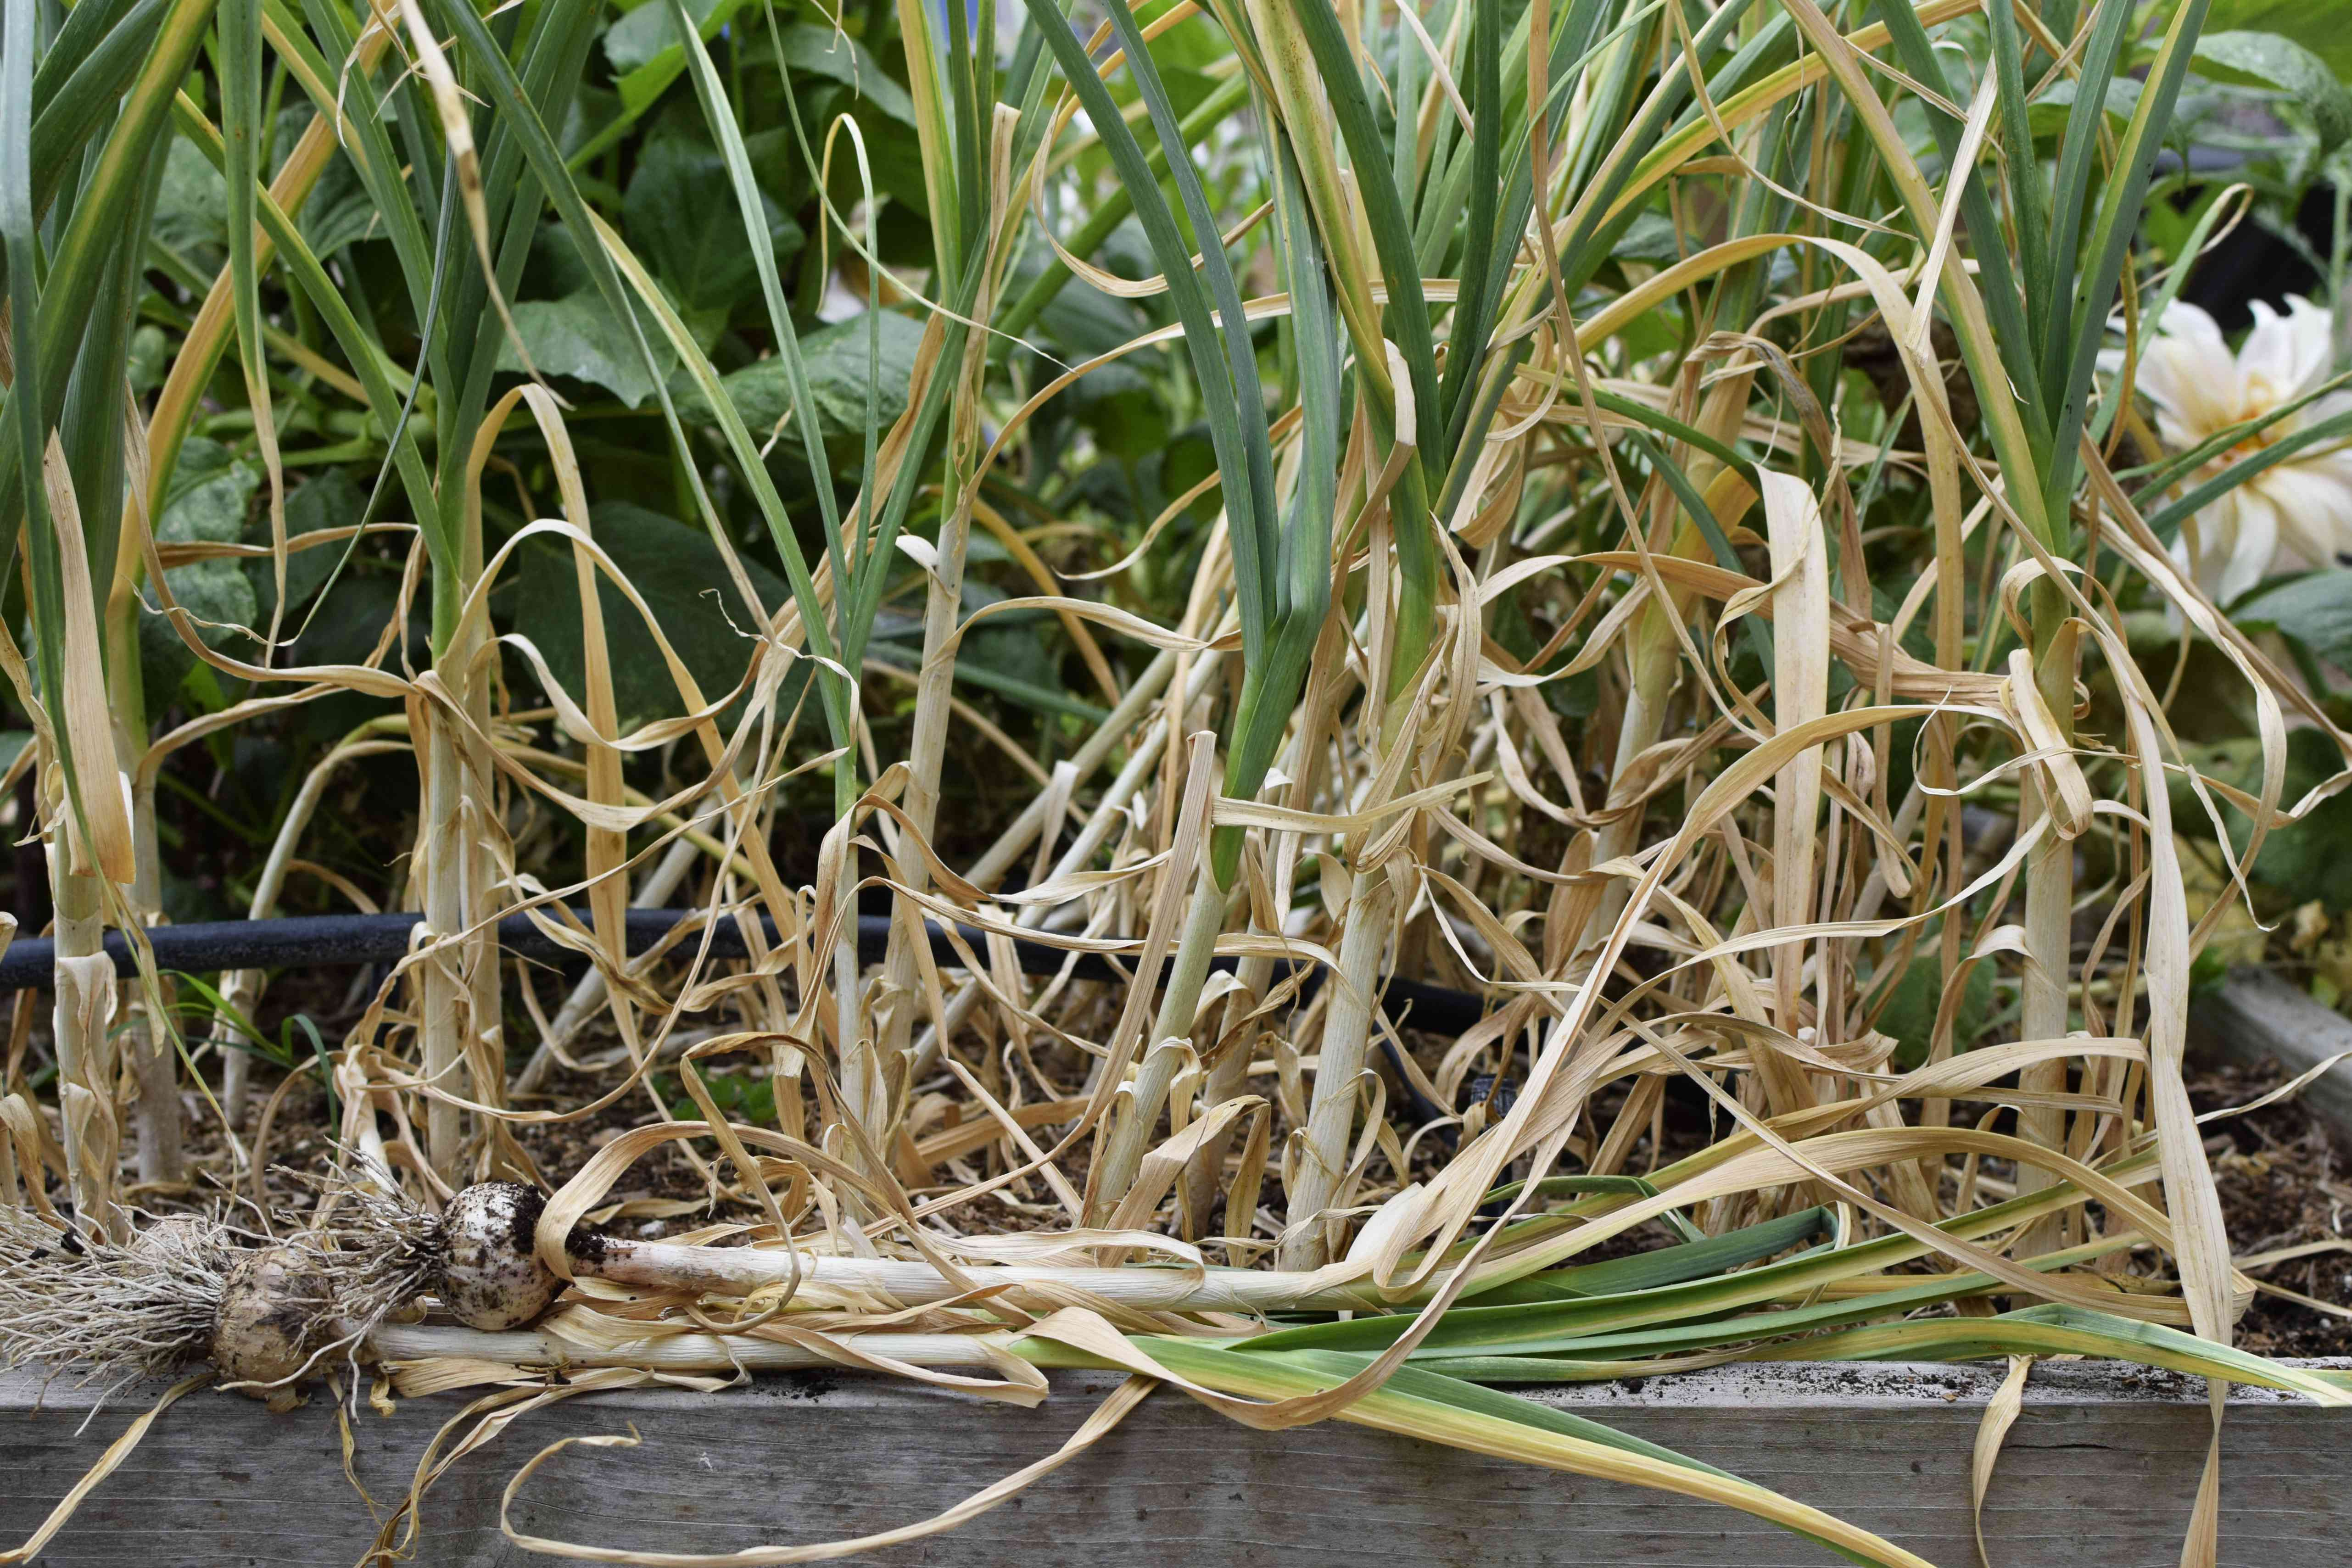 Garlic plants with yellowing leaves and pulled out garlic resting on wood